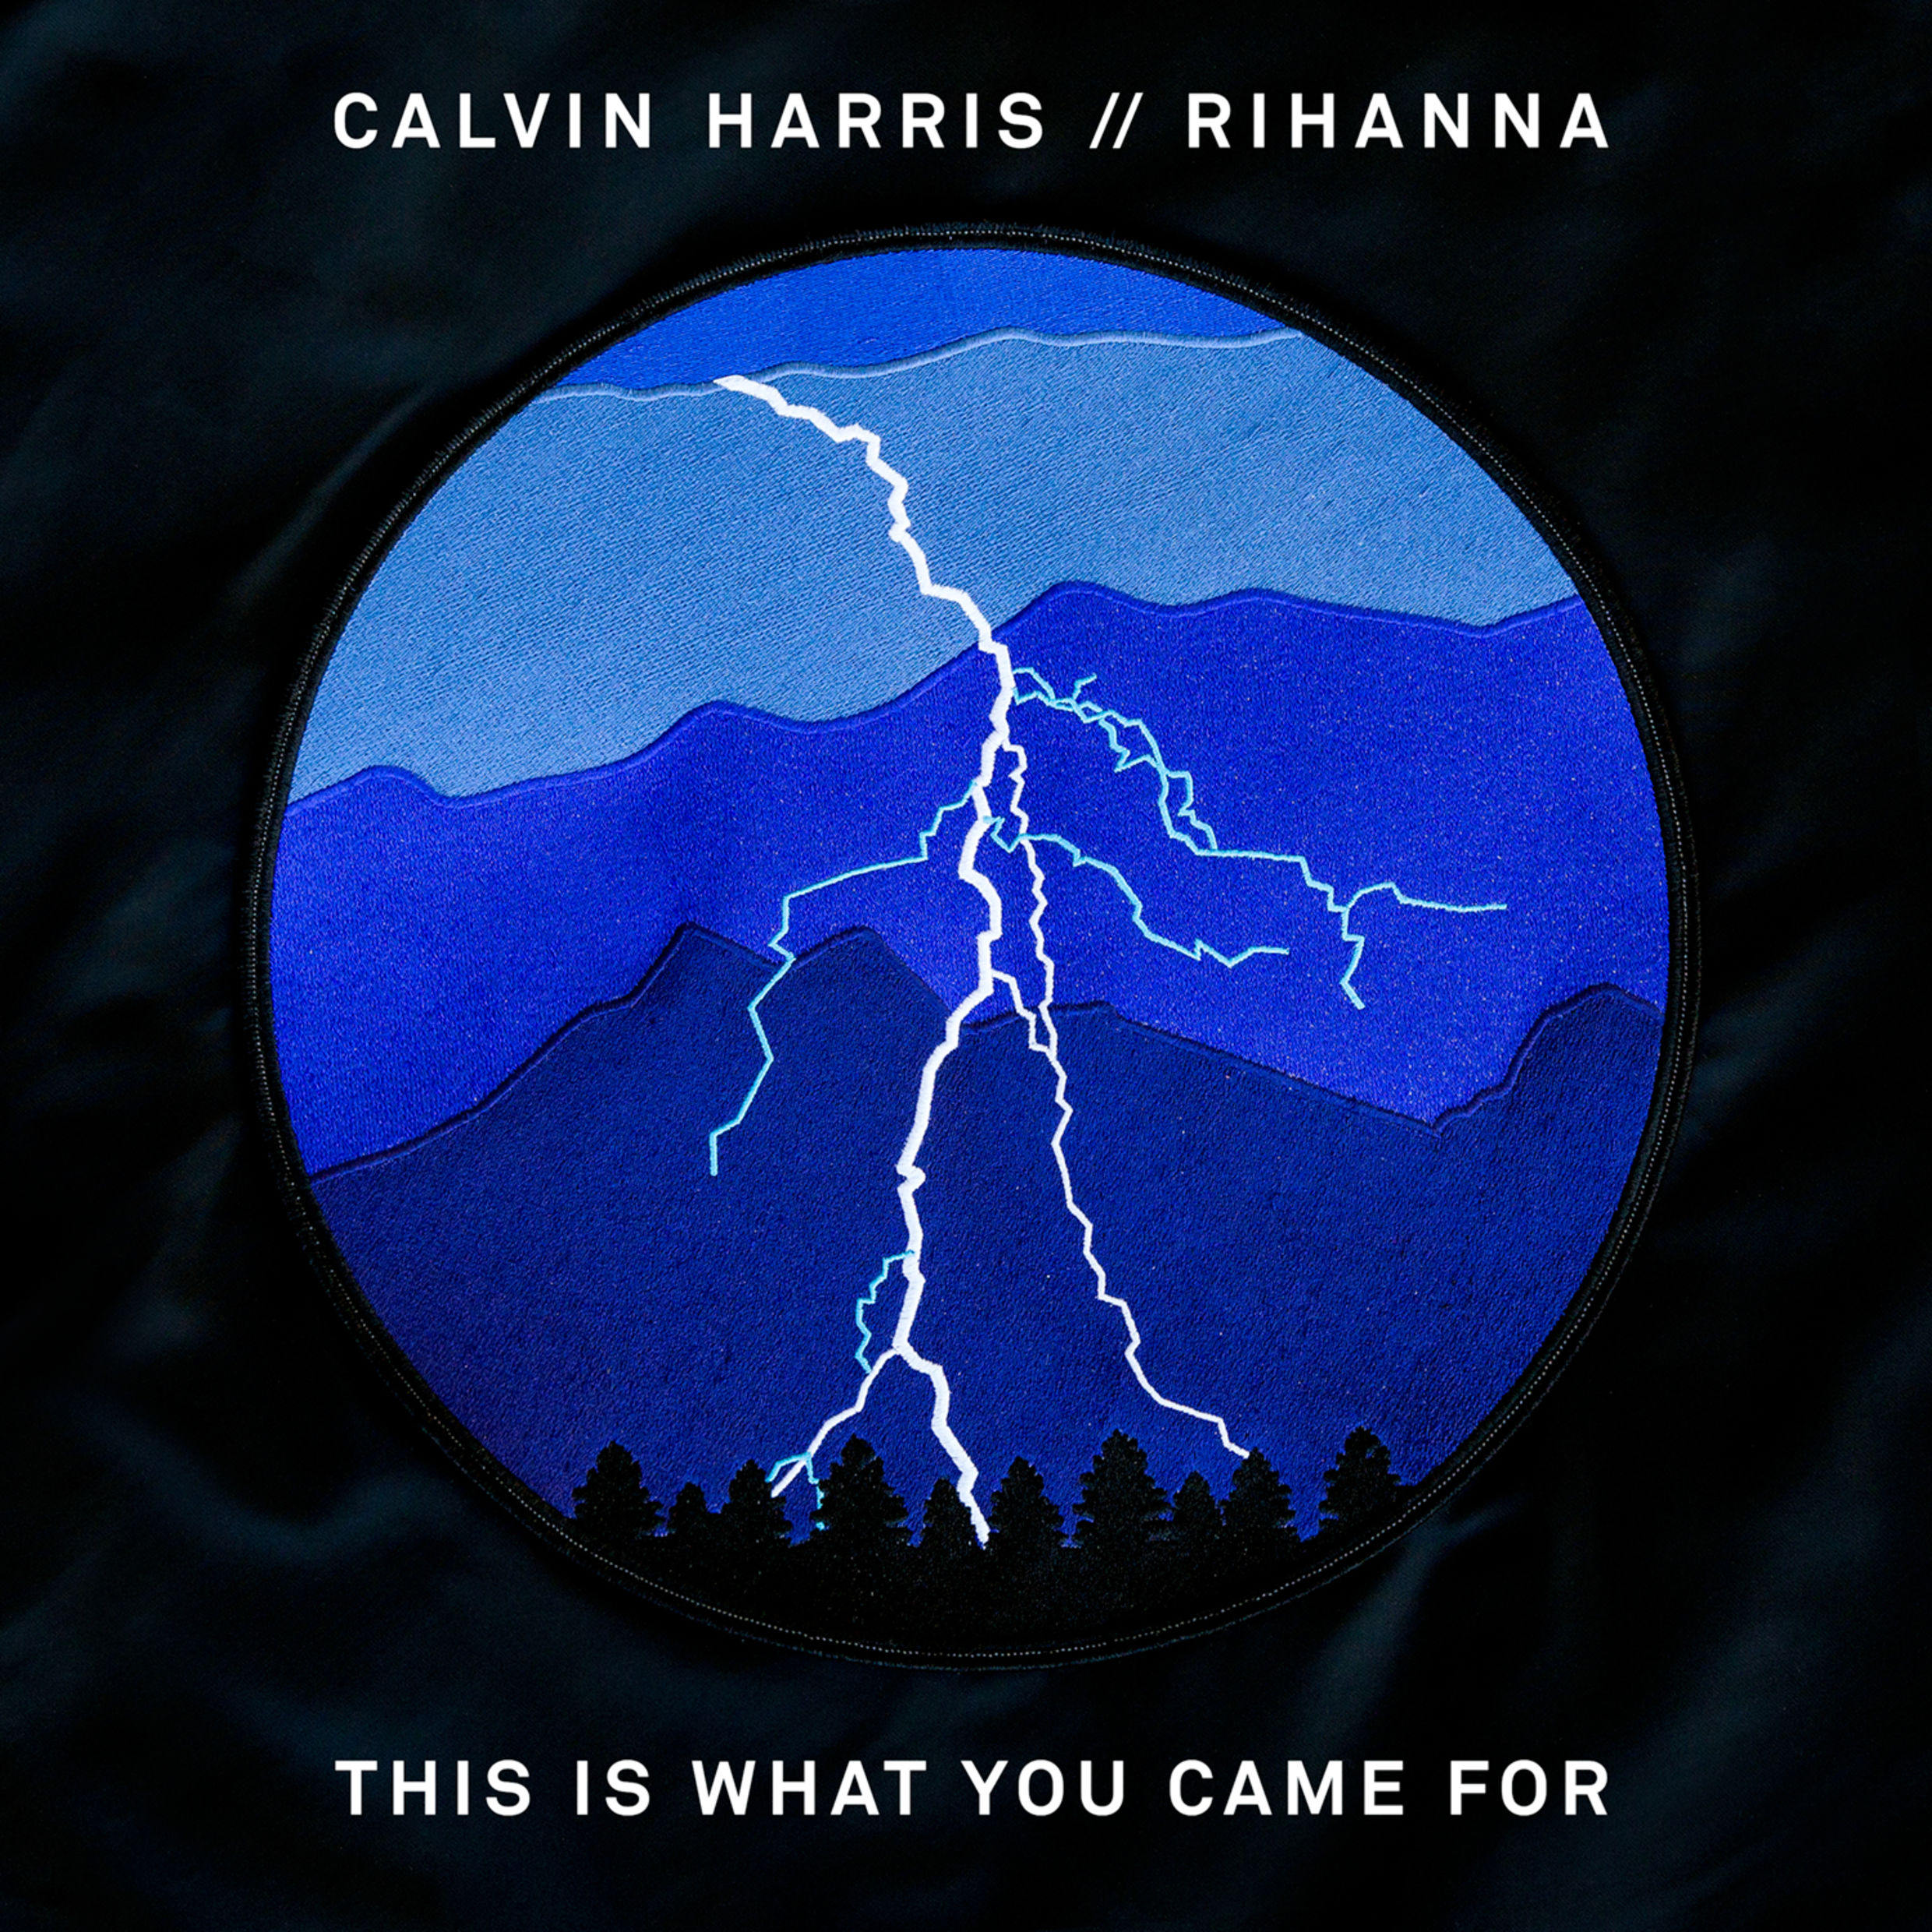 This is what you came for // Calvin Harris + Rihanna artwork